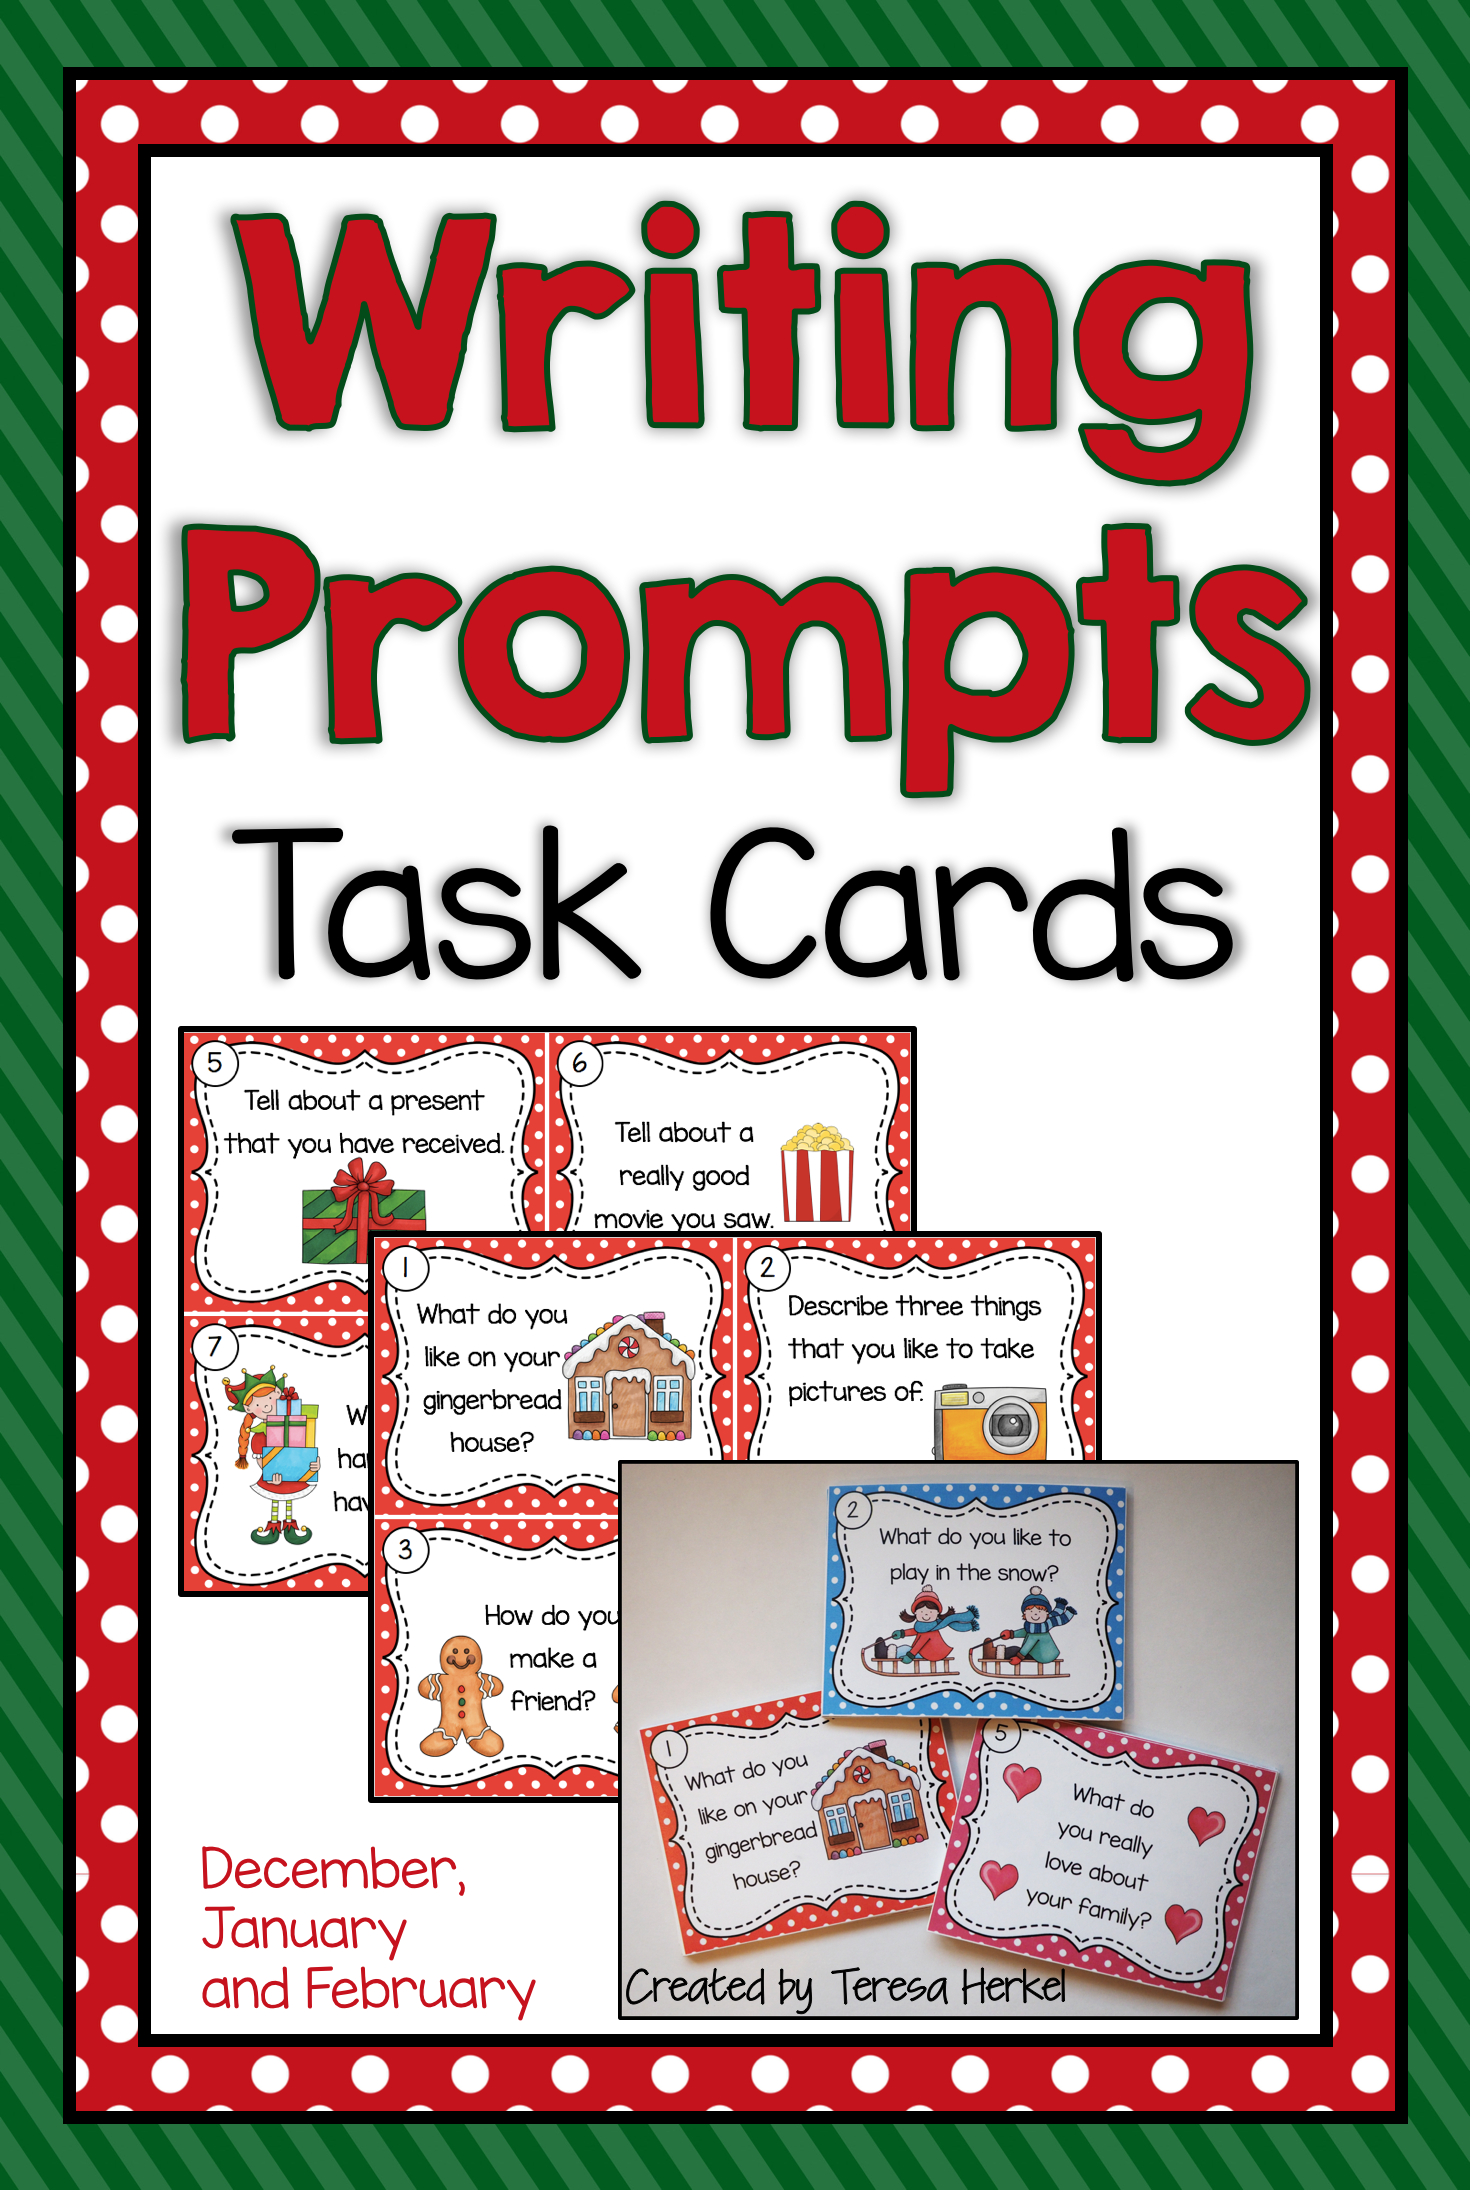 Writing Prompts Task Cards For December January And